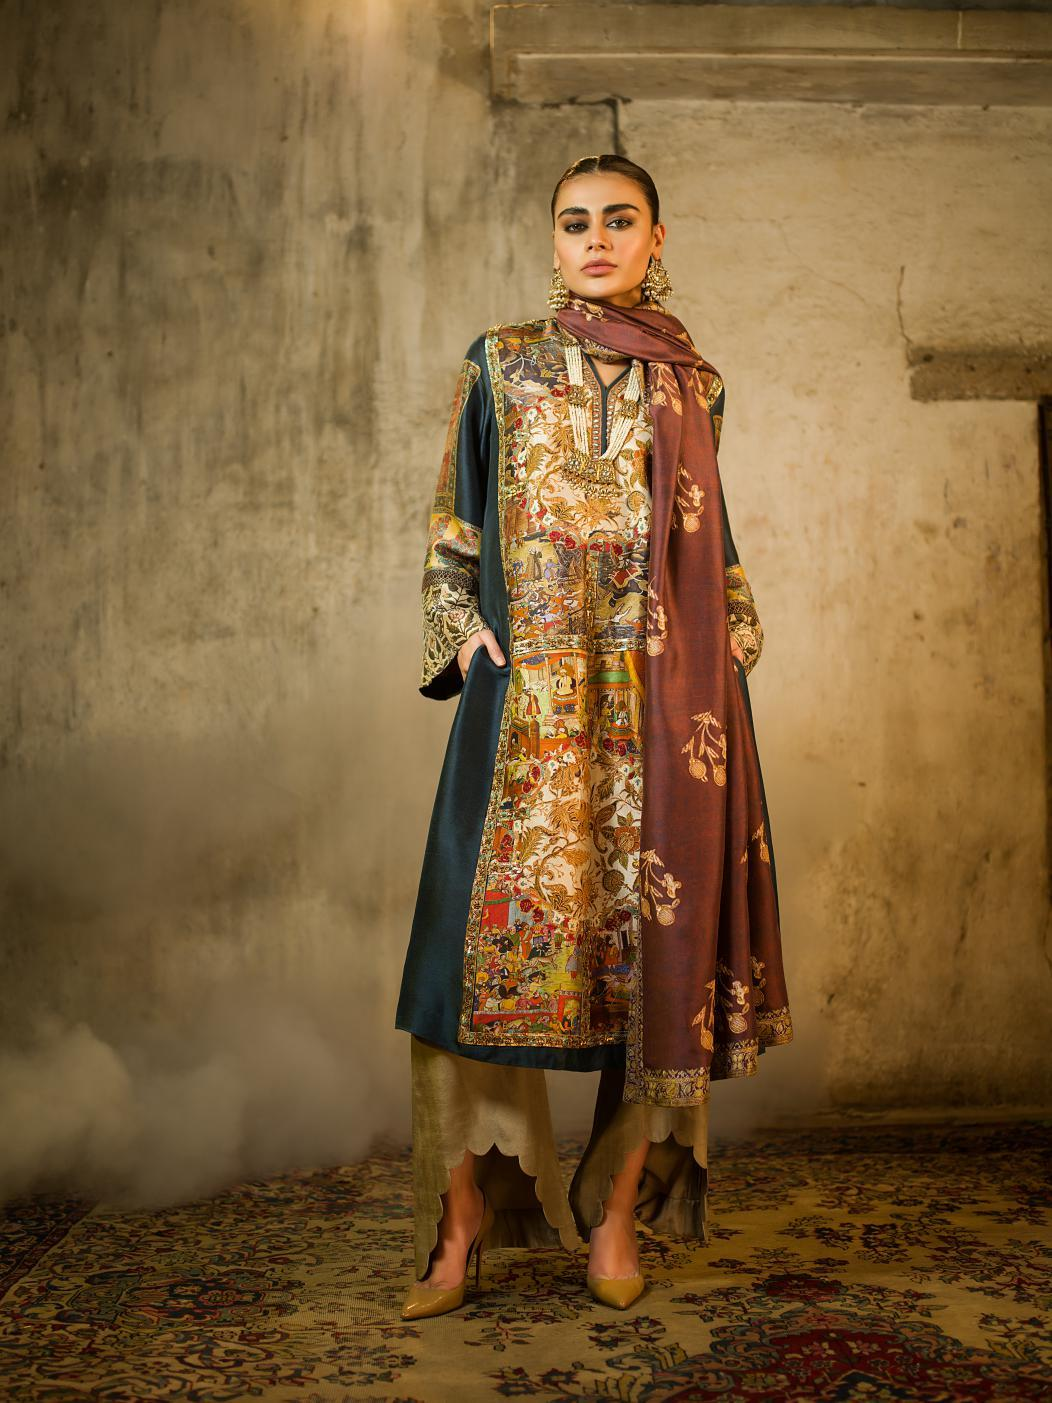 Shamaeel - Digitally Printed Long Tunic - M4